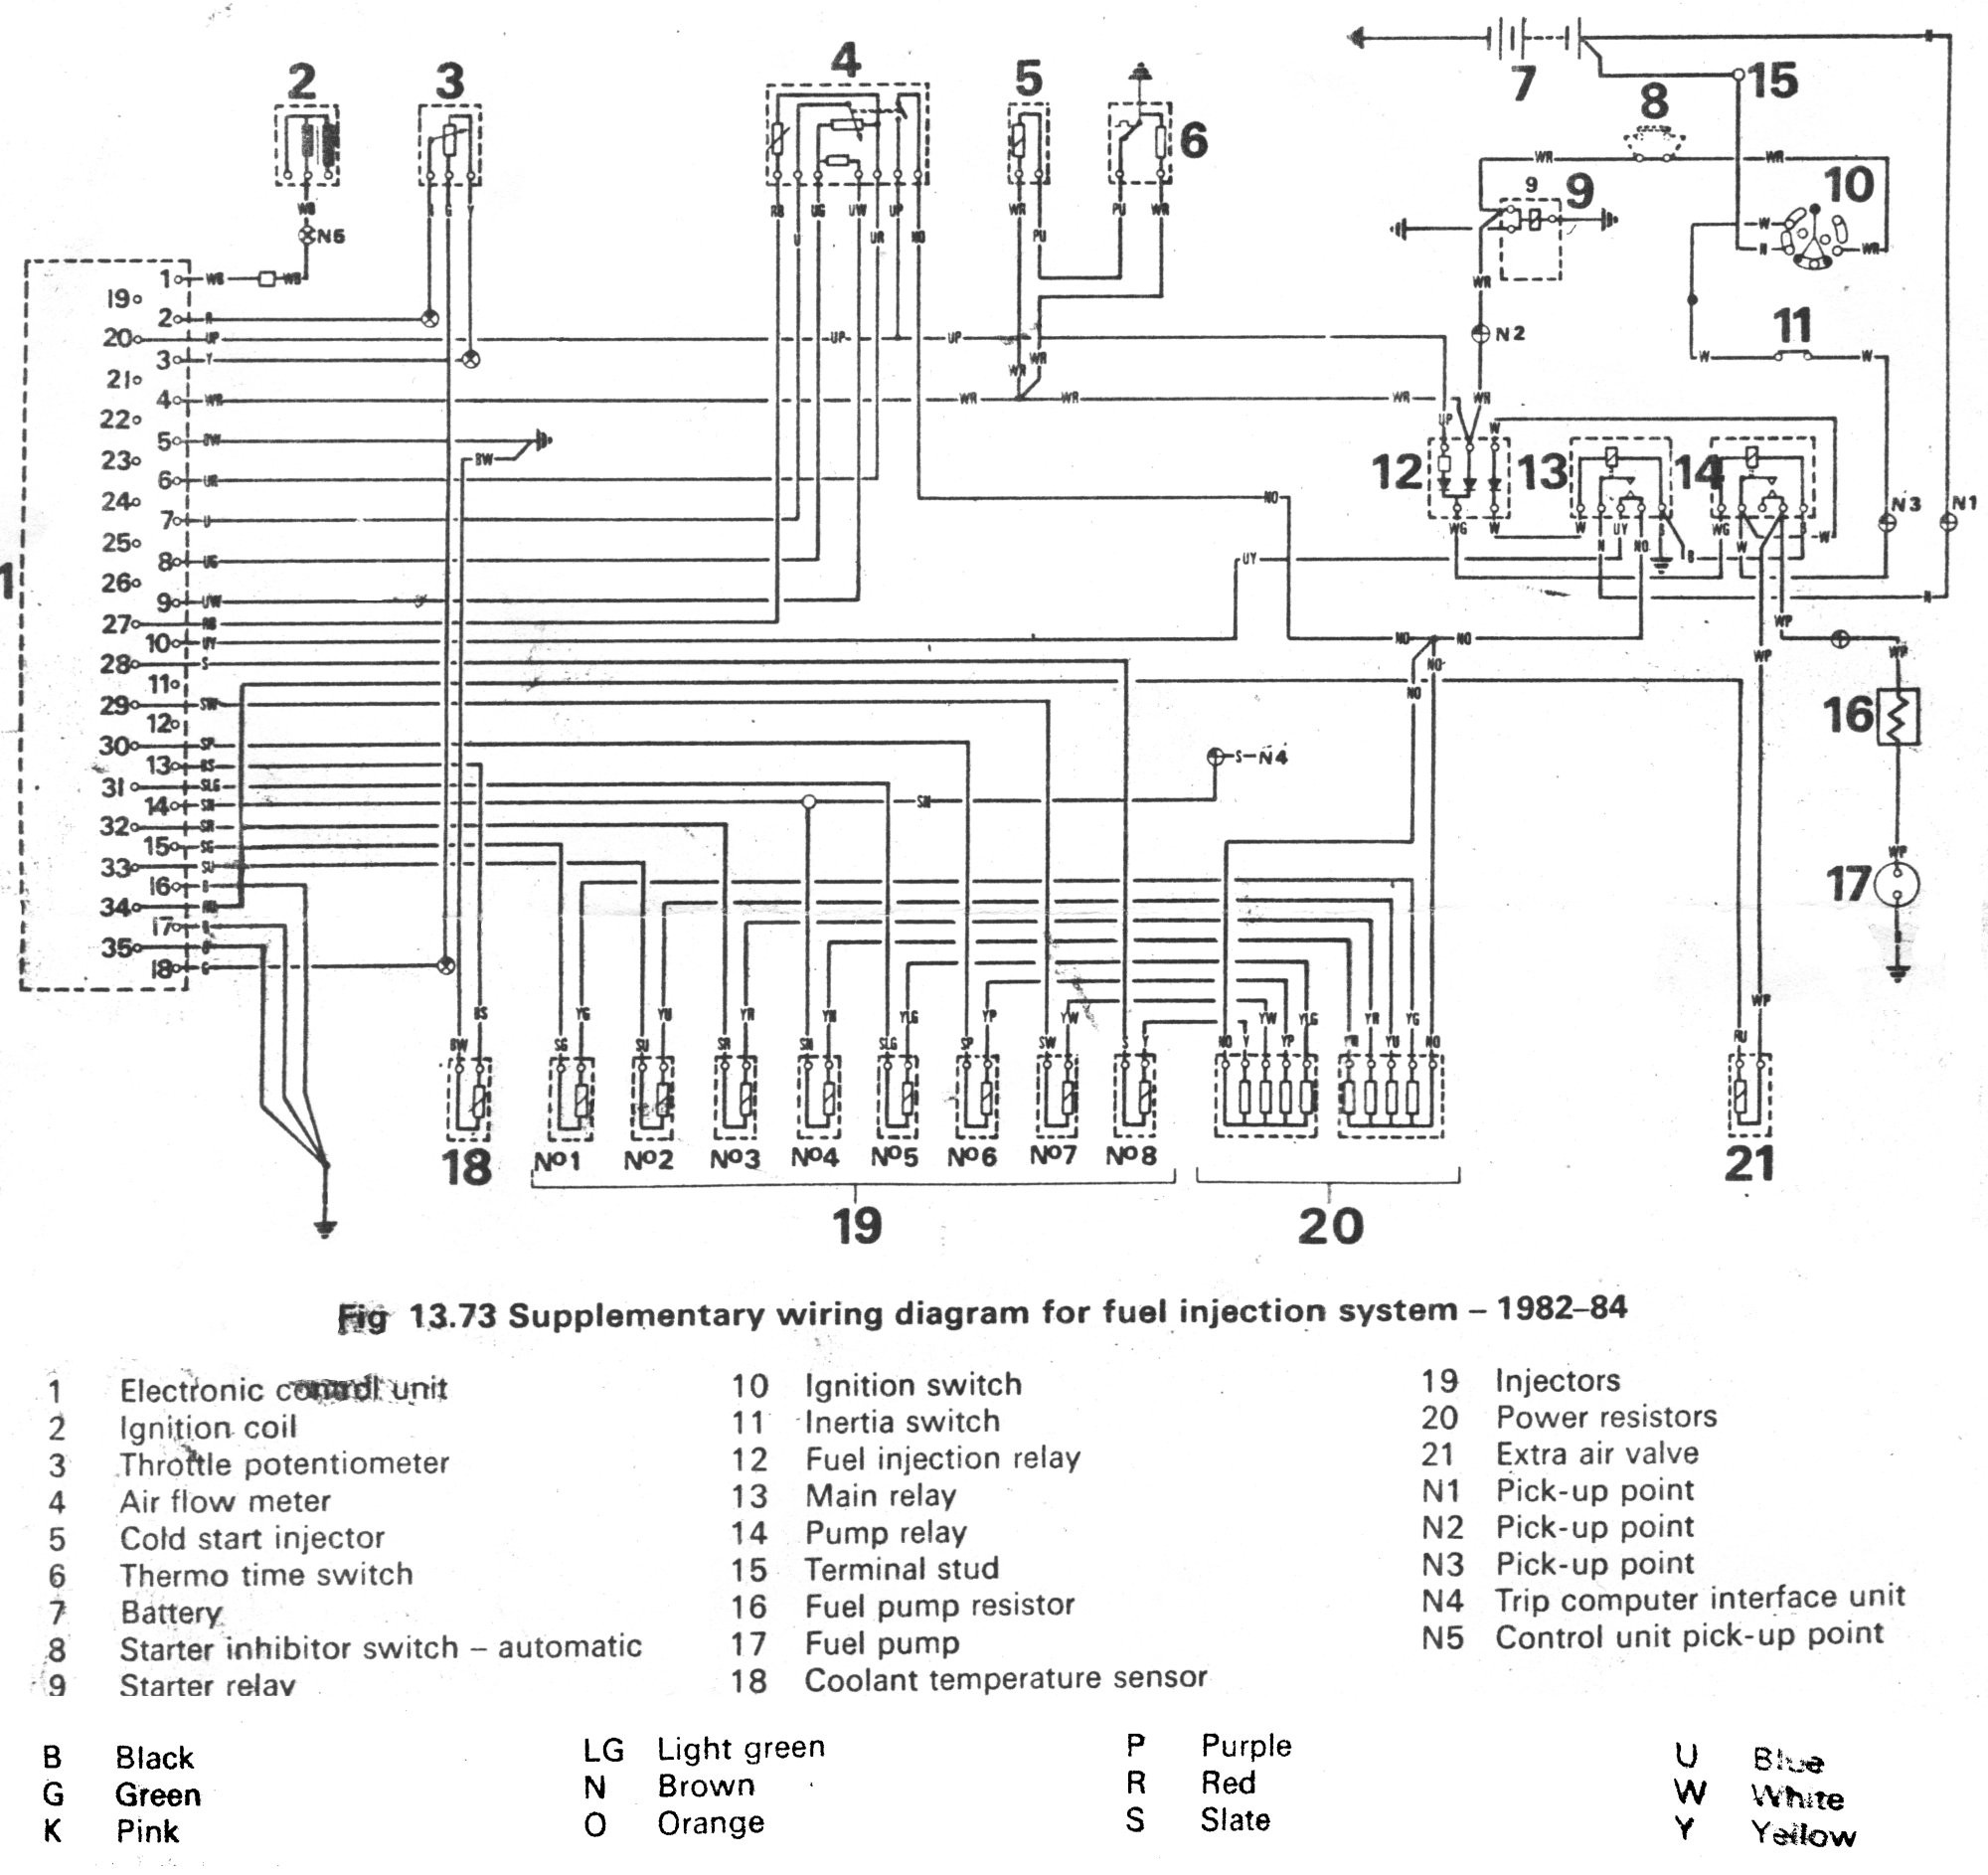 93 Mustang Wiring Diagram 1987 Ford Ranger 20 L4 Gas 87 Main Harness Free Picture Info Of